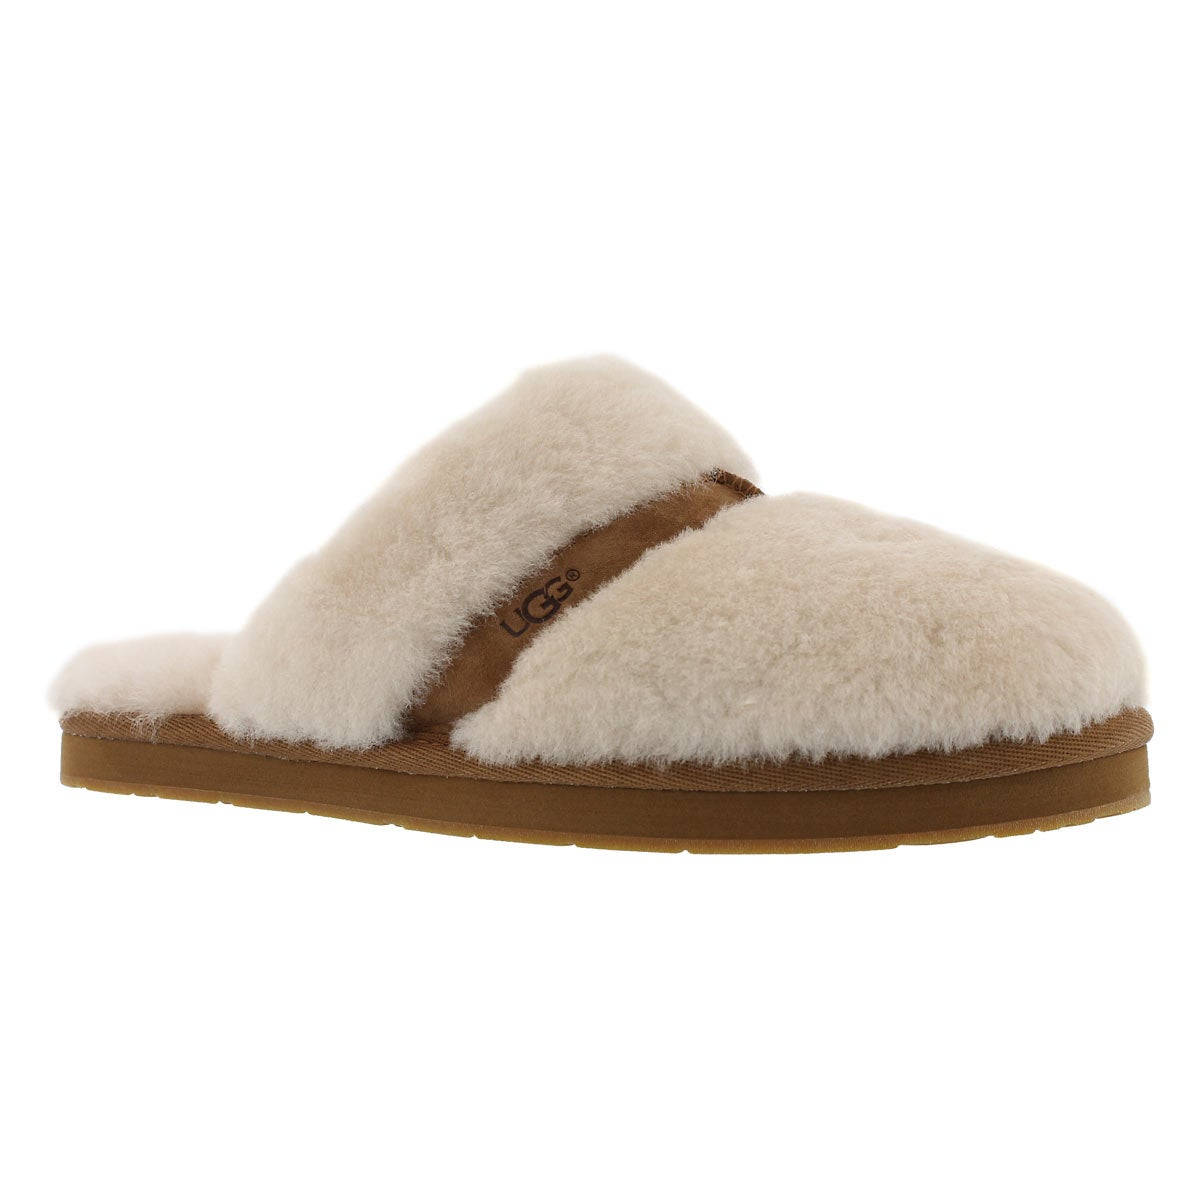 Women's DALLA natural sheepskin slippers